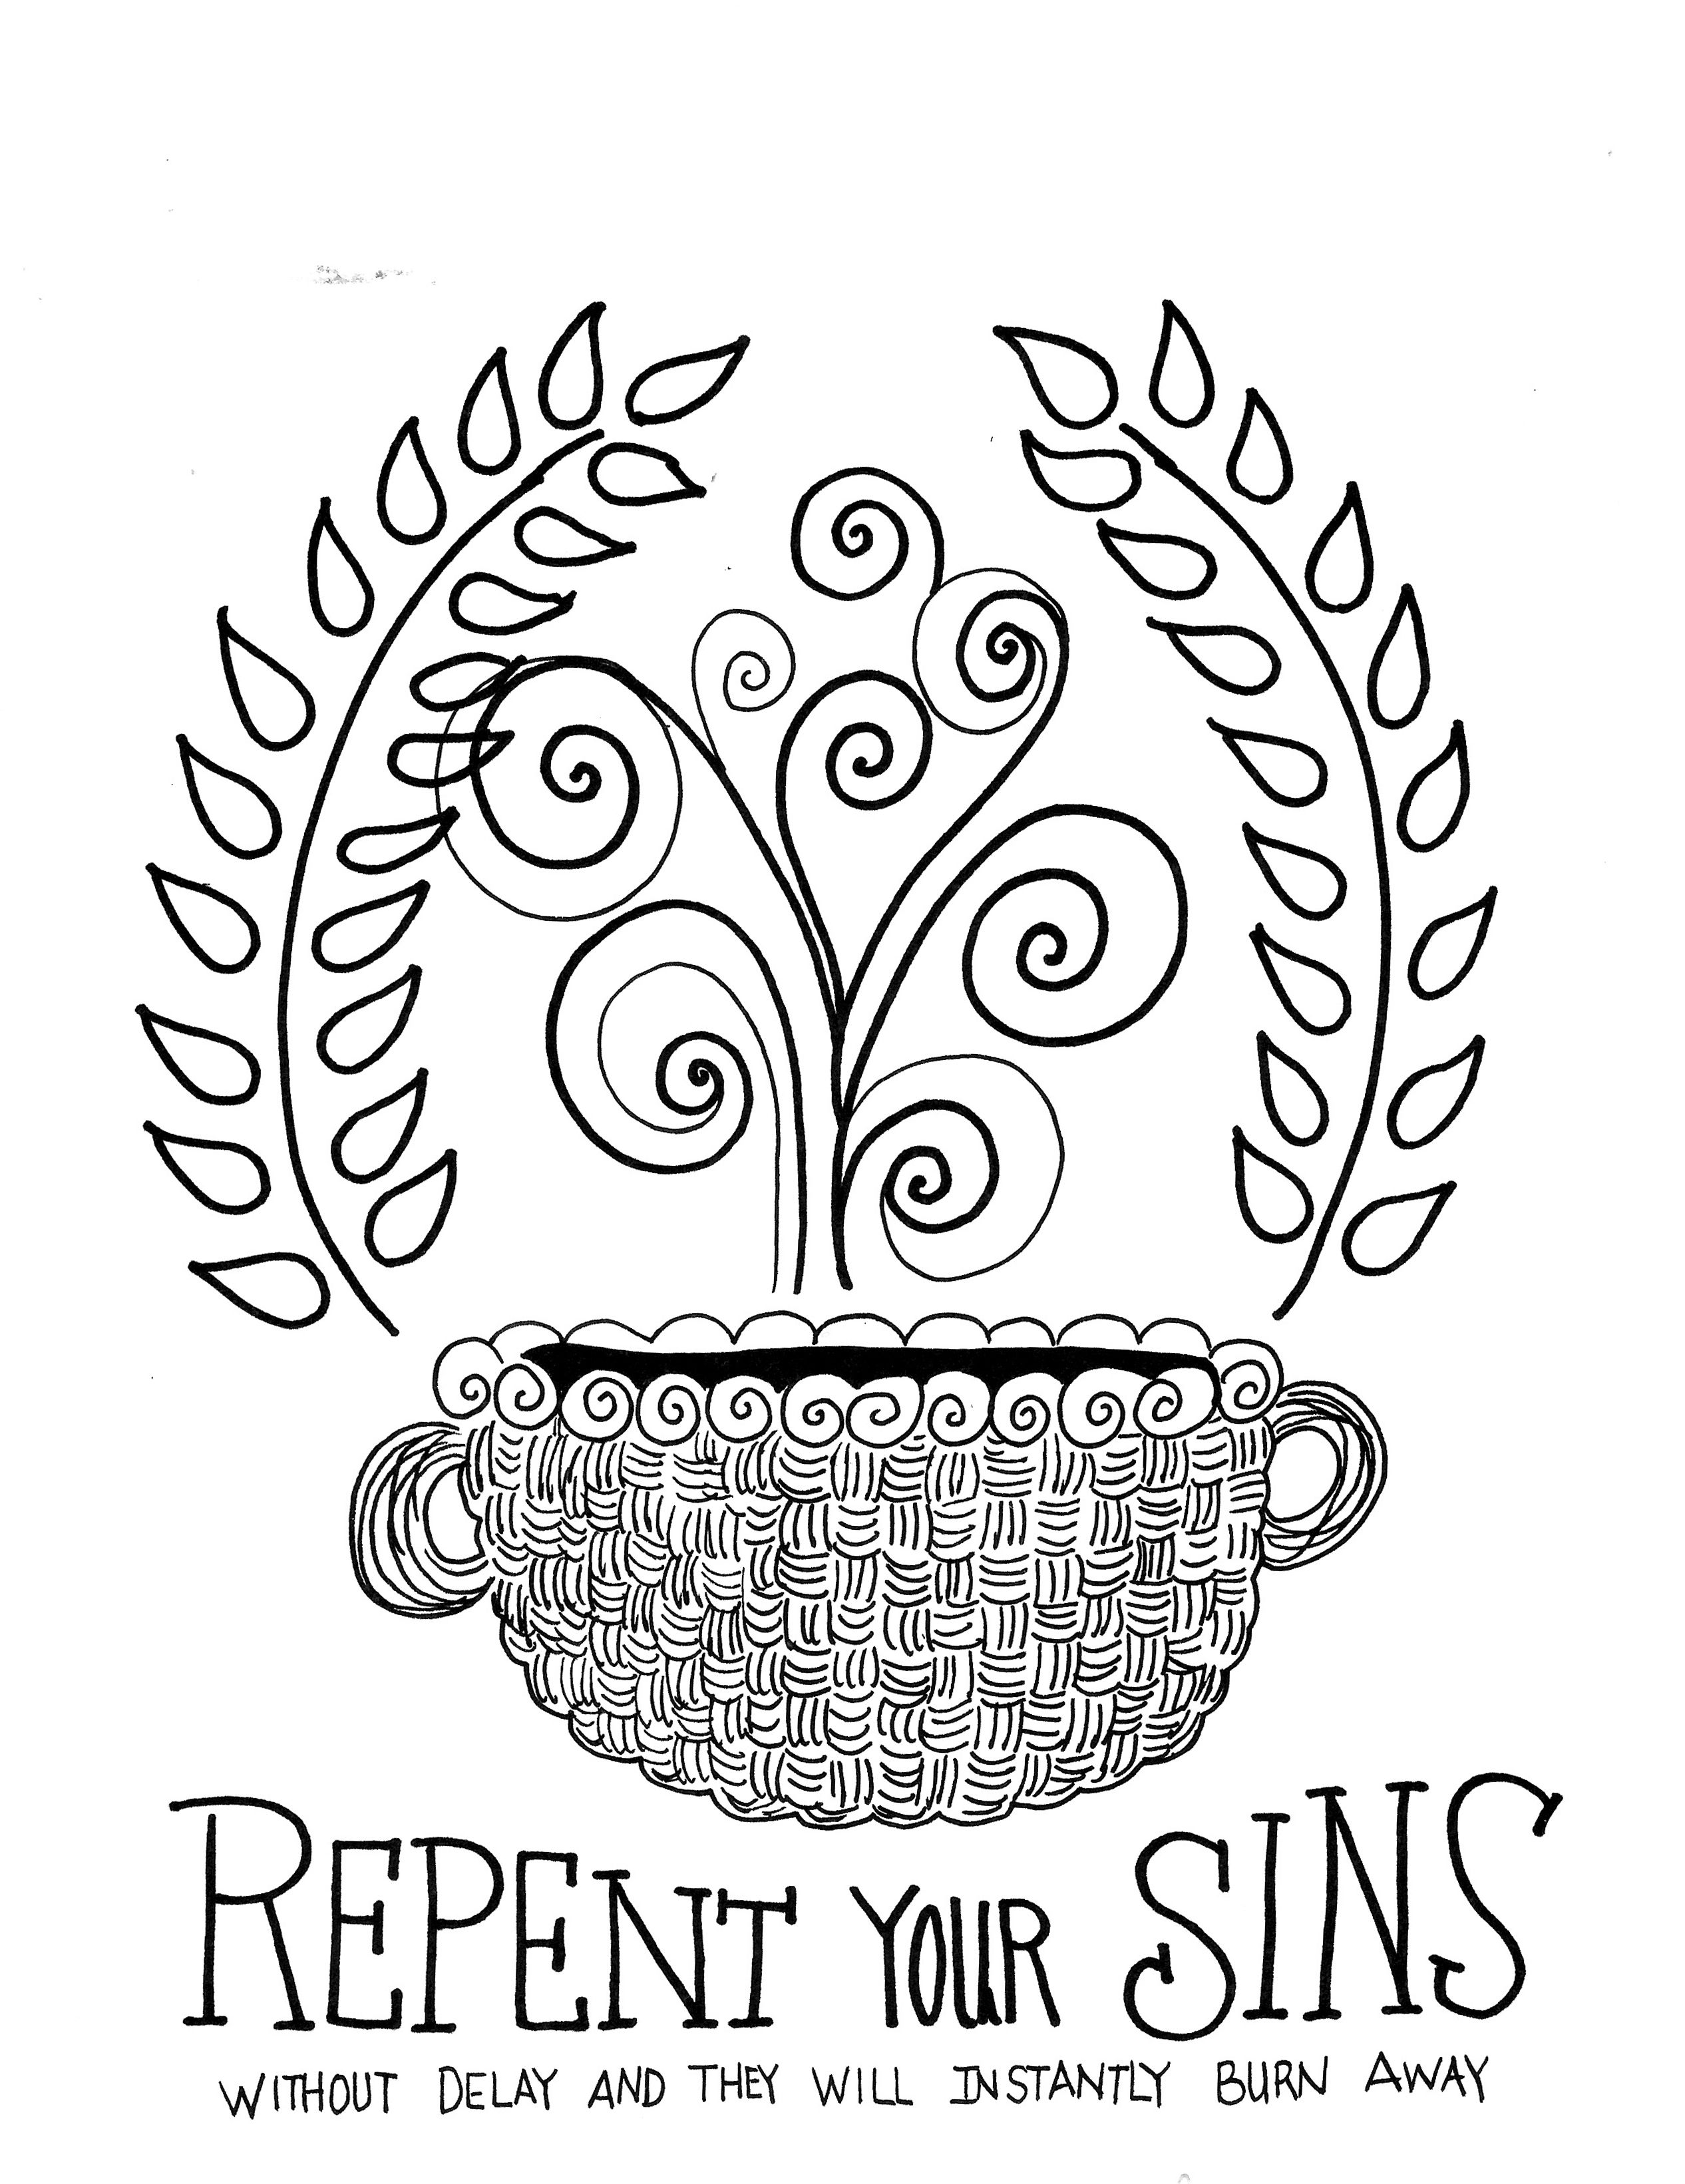 Free coloring pages for bible verses - Free Scripture Coloring Pages Printable Zenspirations Color And Reflect On The Bible God S Word Journal Devotional By Anne Harb